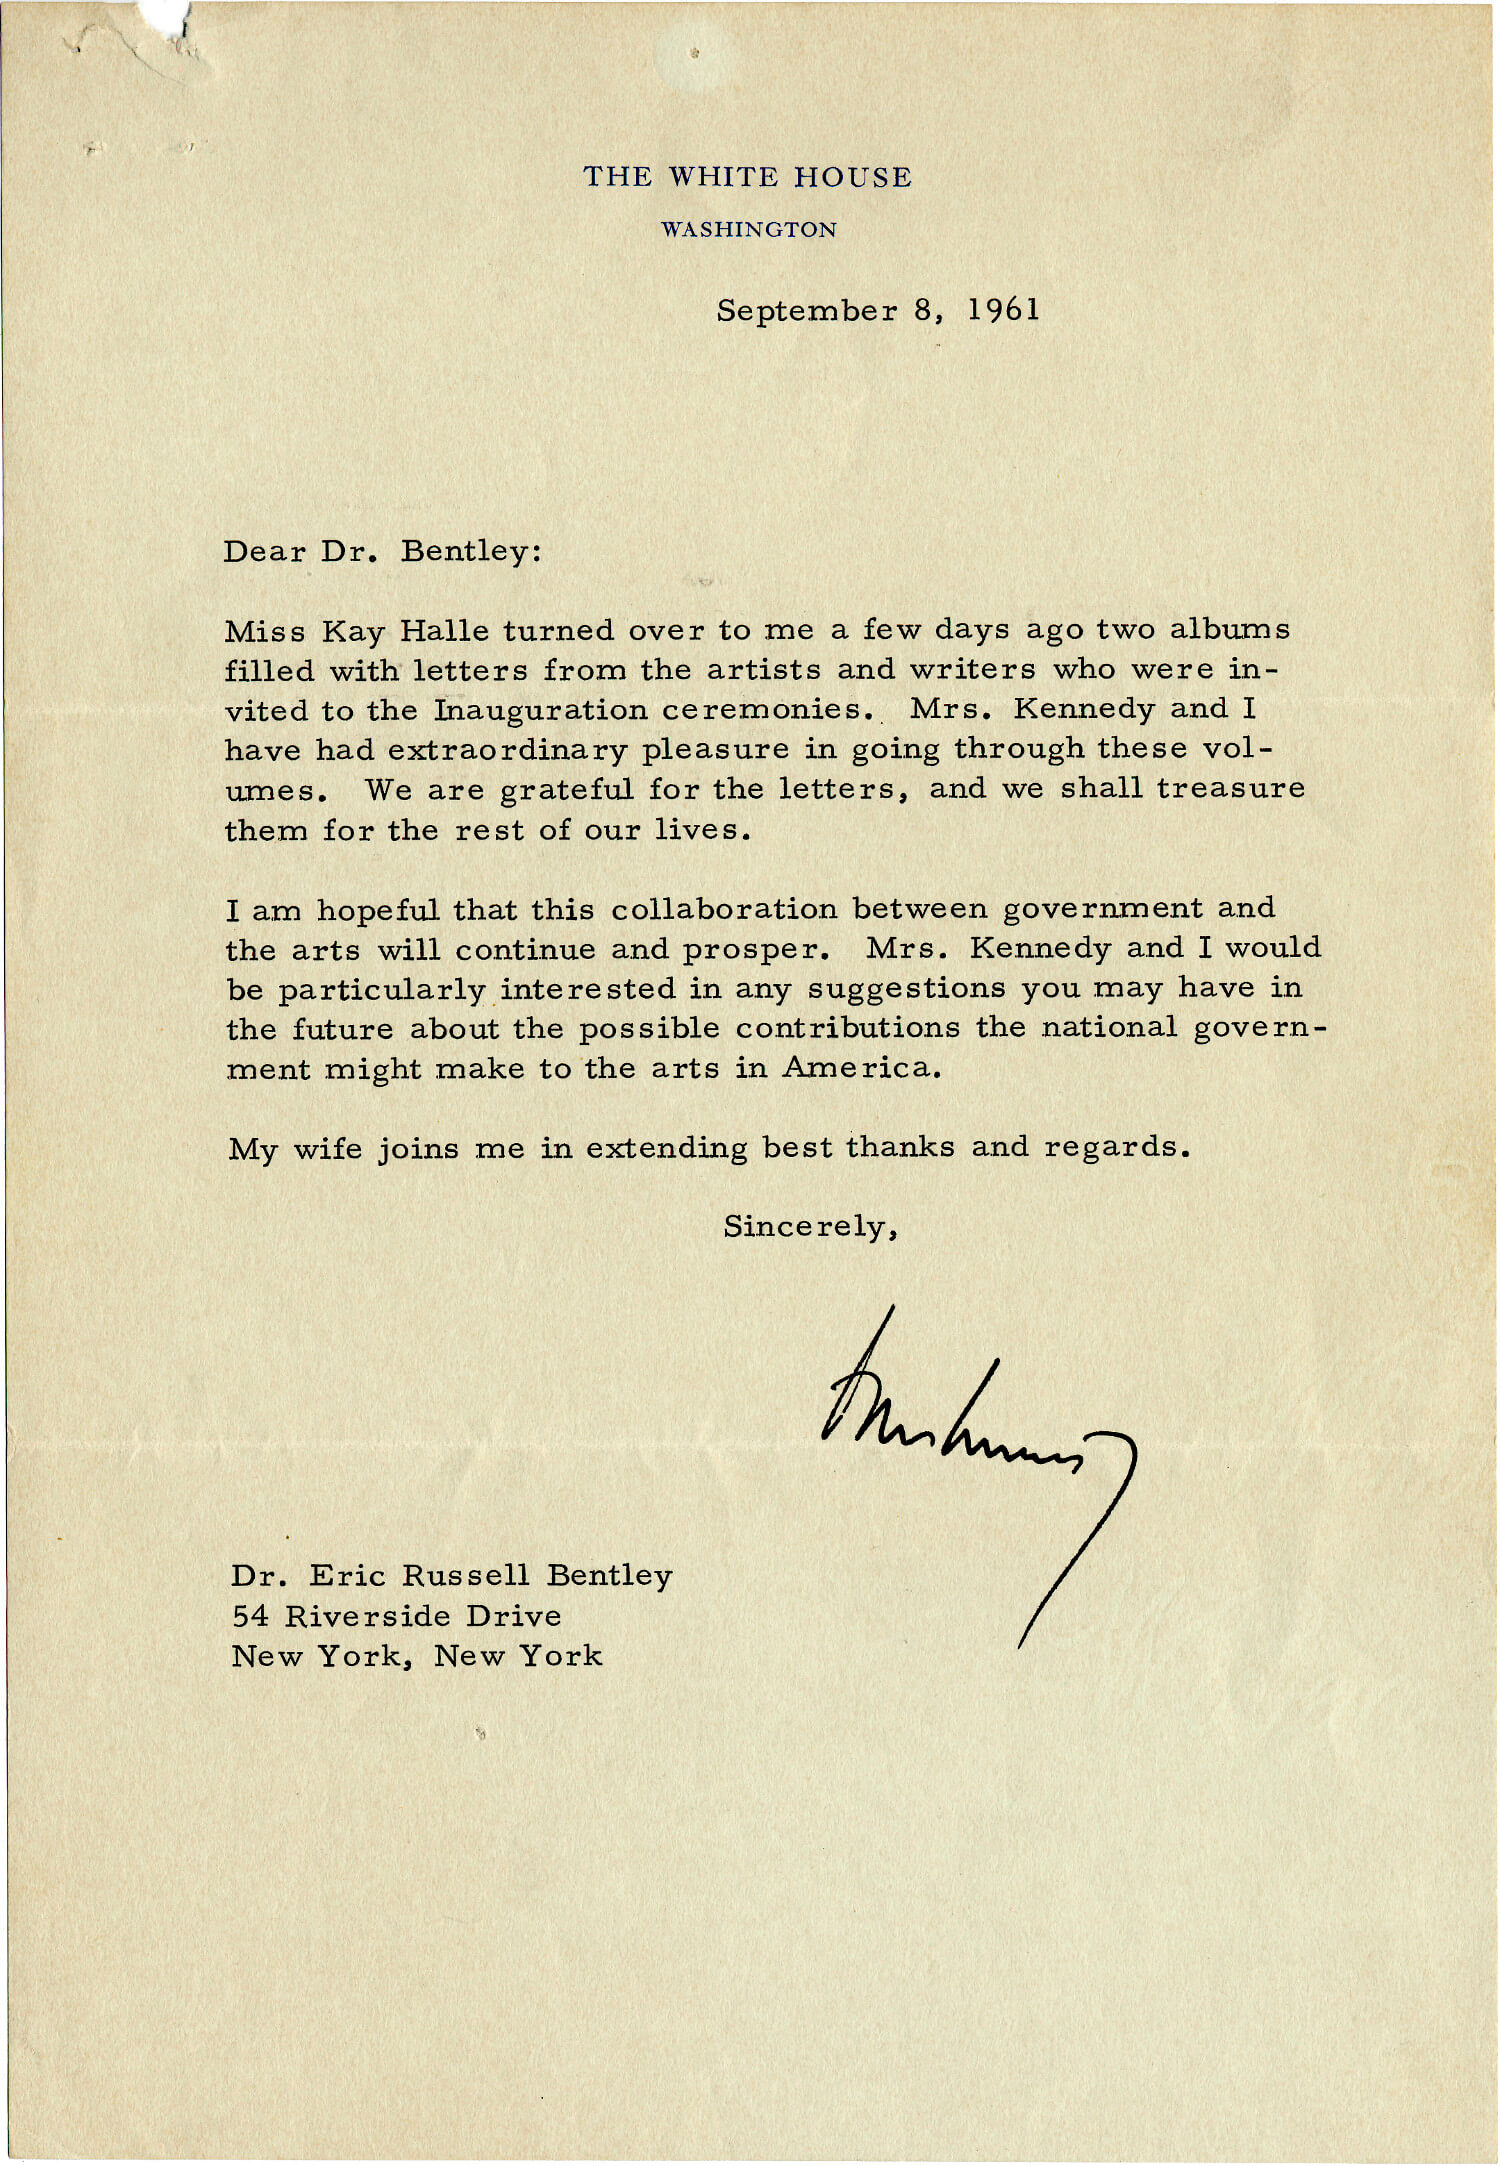 kennedy and the arts his unprecedented invitation of scholars artists writers and thinkers to his inauguration